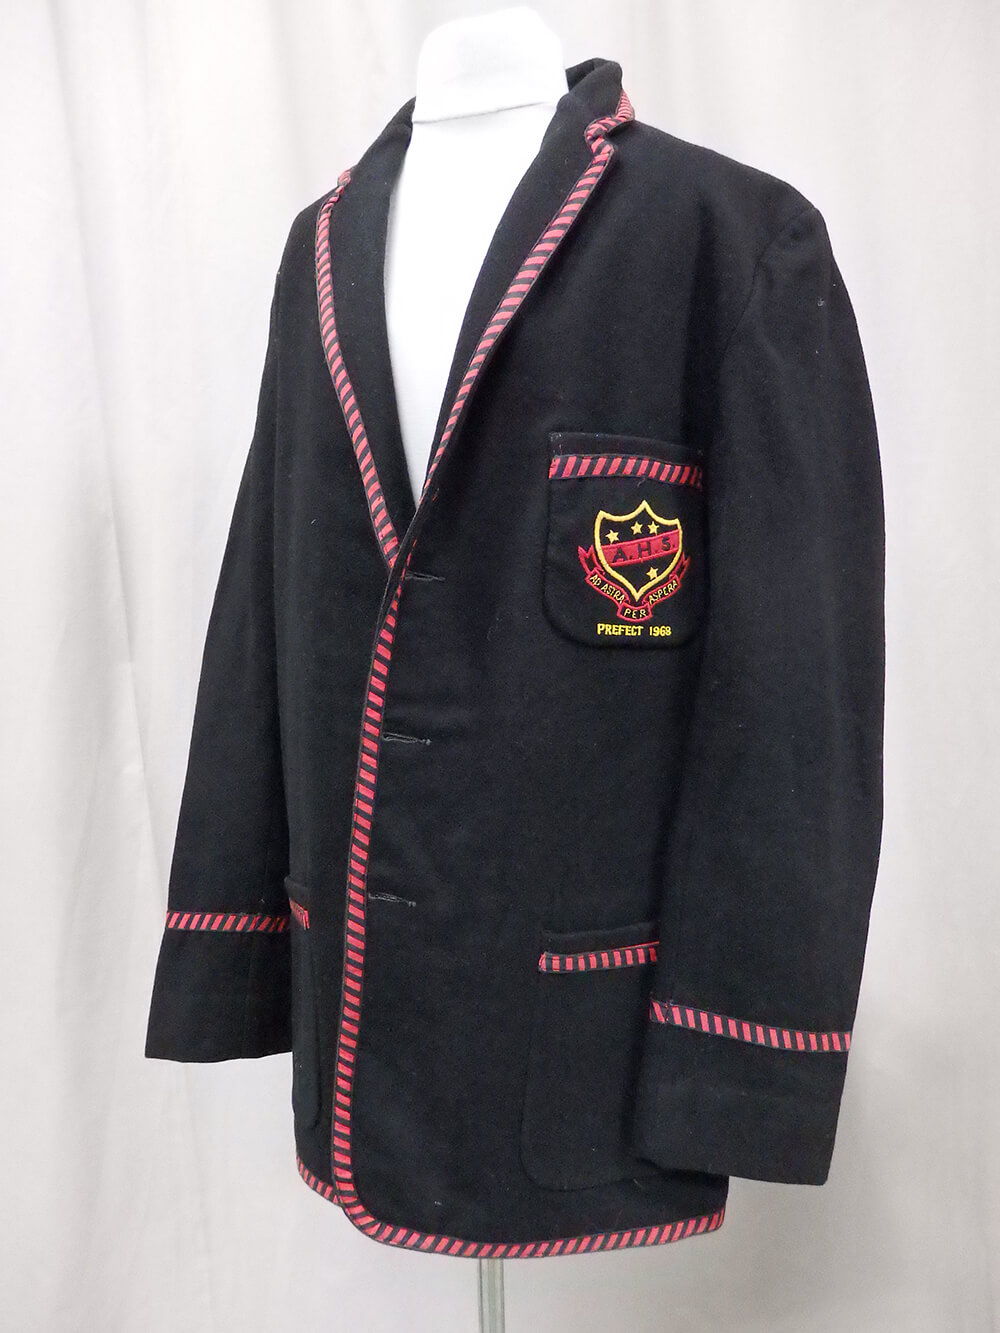 A navy blue Albury High School prefects blazer from 1968. The school crest and motto are embroidered on the left breast pocket. The blazer has three pockets and three buttons. Red and black striped edging is sewn on pockets, cuffs and around edges. ARM 94.009.